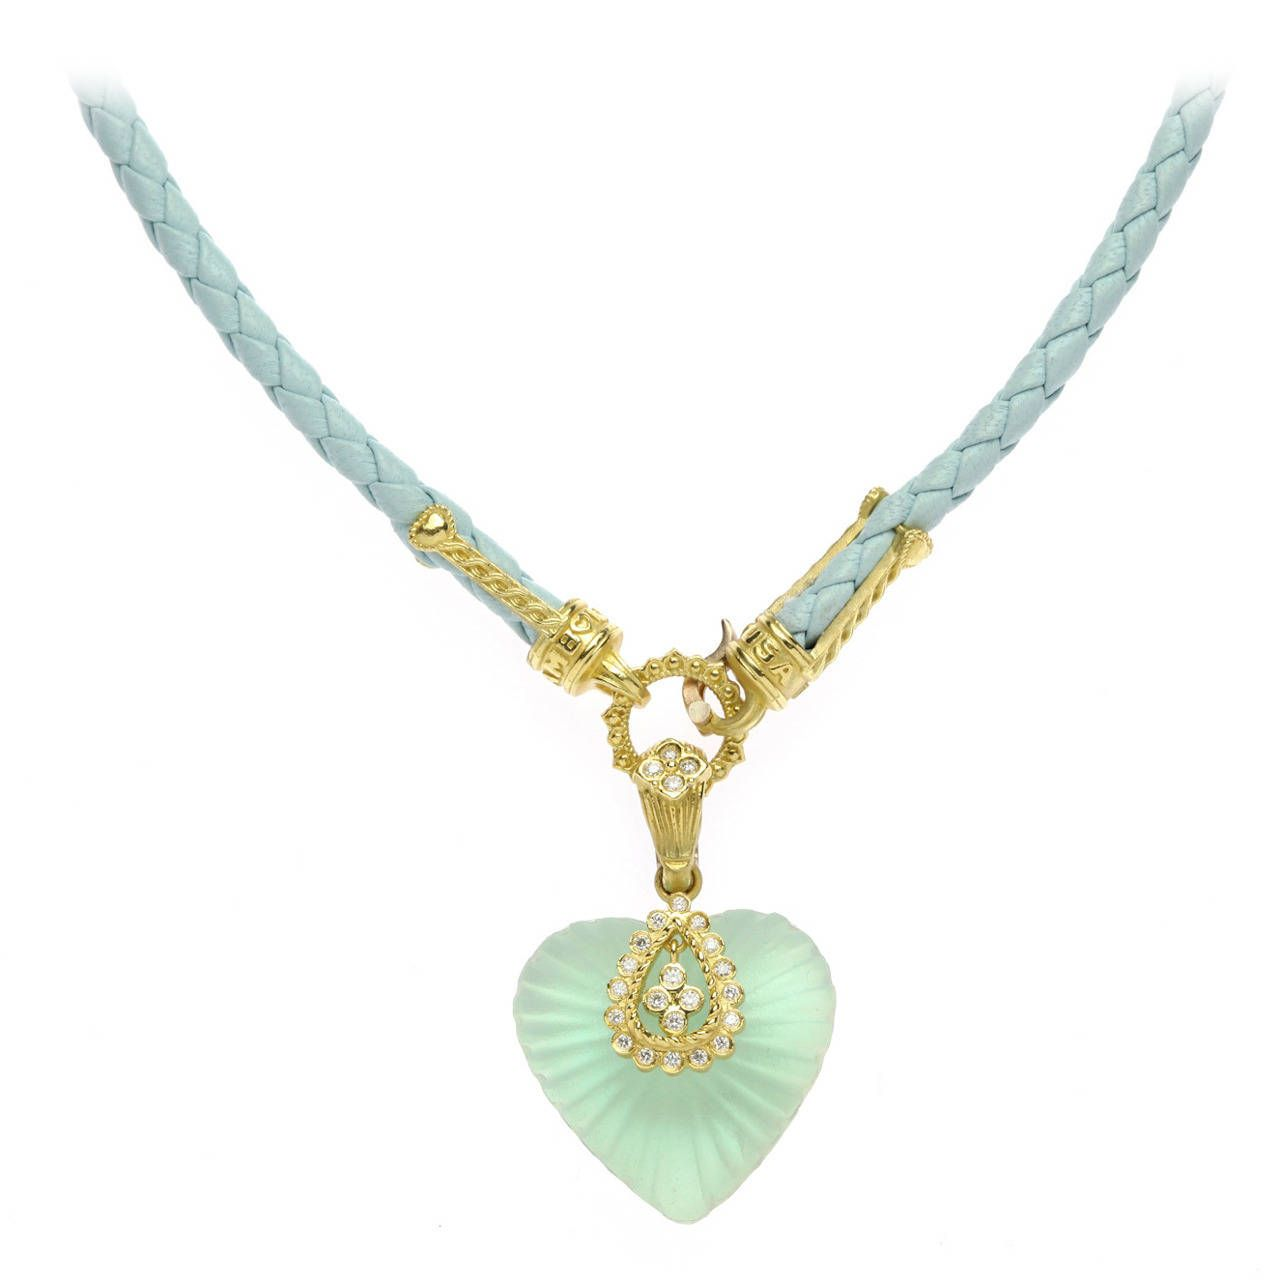 Stambolian Frosted Quartz Gold Pendant Blue Leather Necklace | From a unique collection of vintage necklace enhancers at https://www.1stdibs.com/jewelry/necklaces/necklace-enhancers/